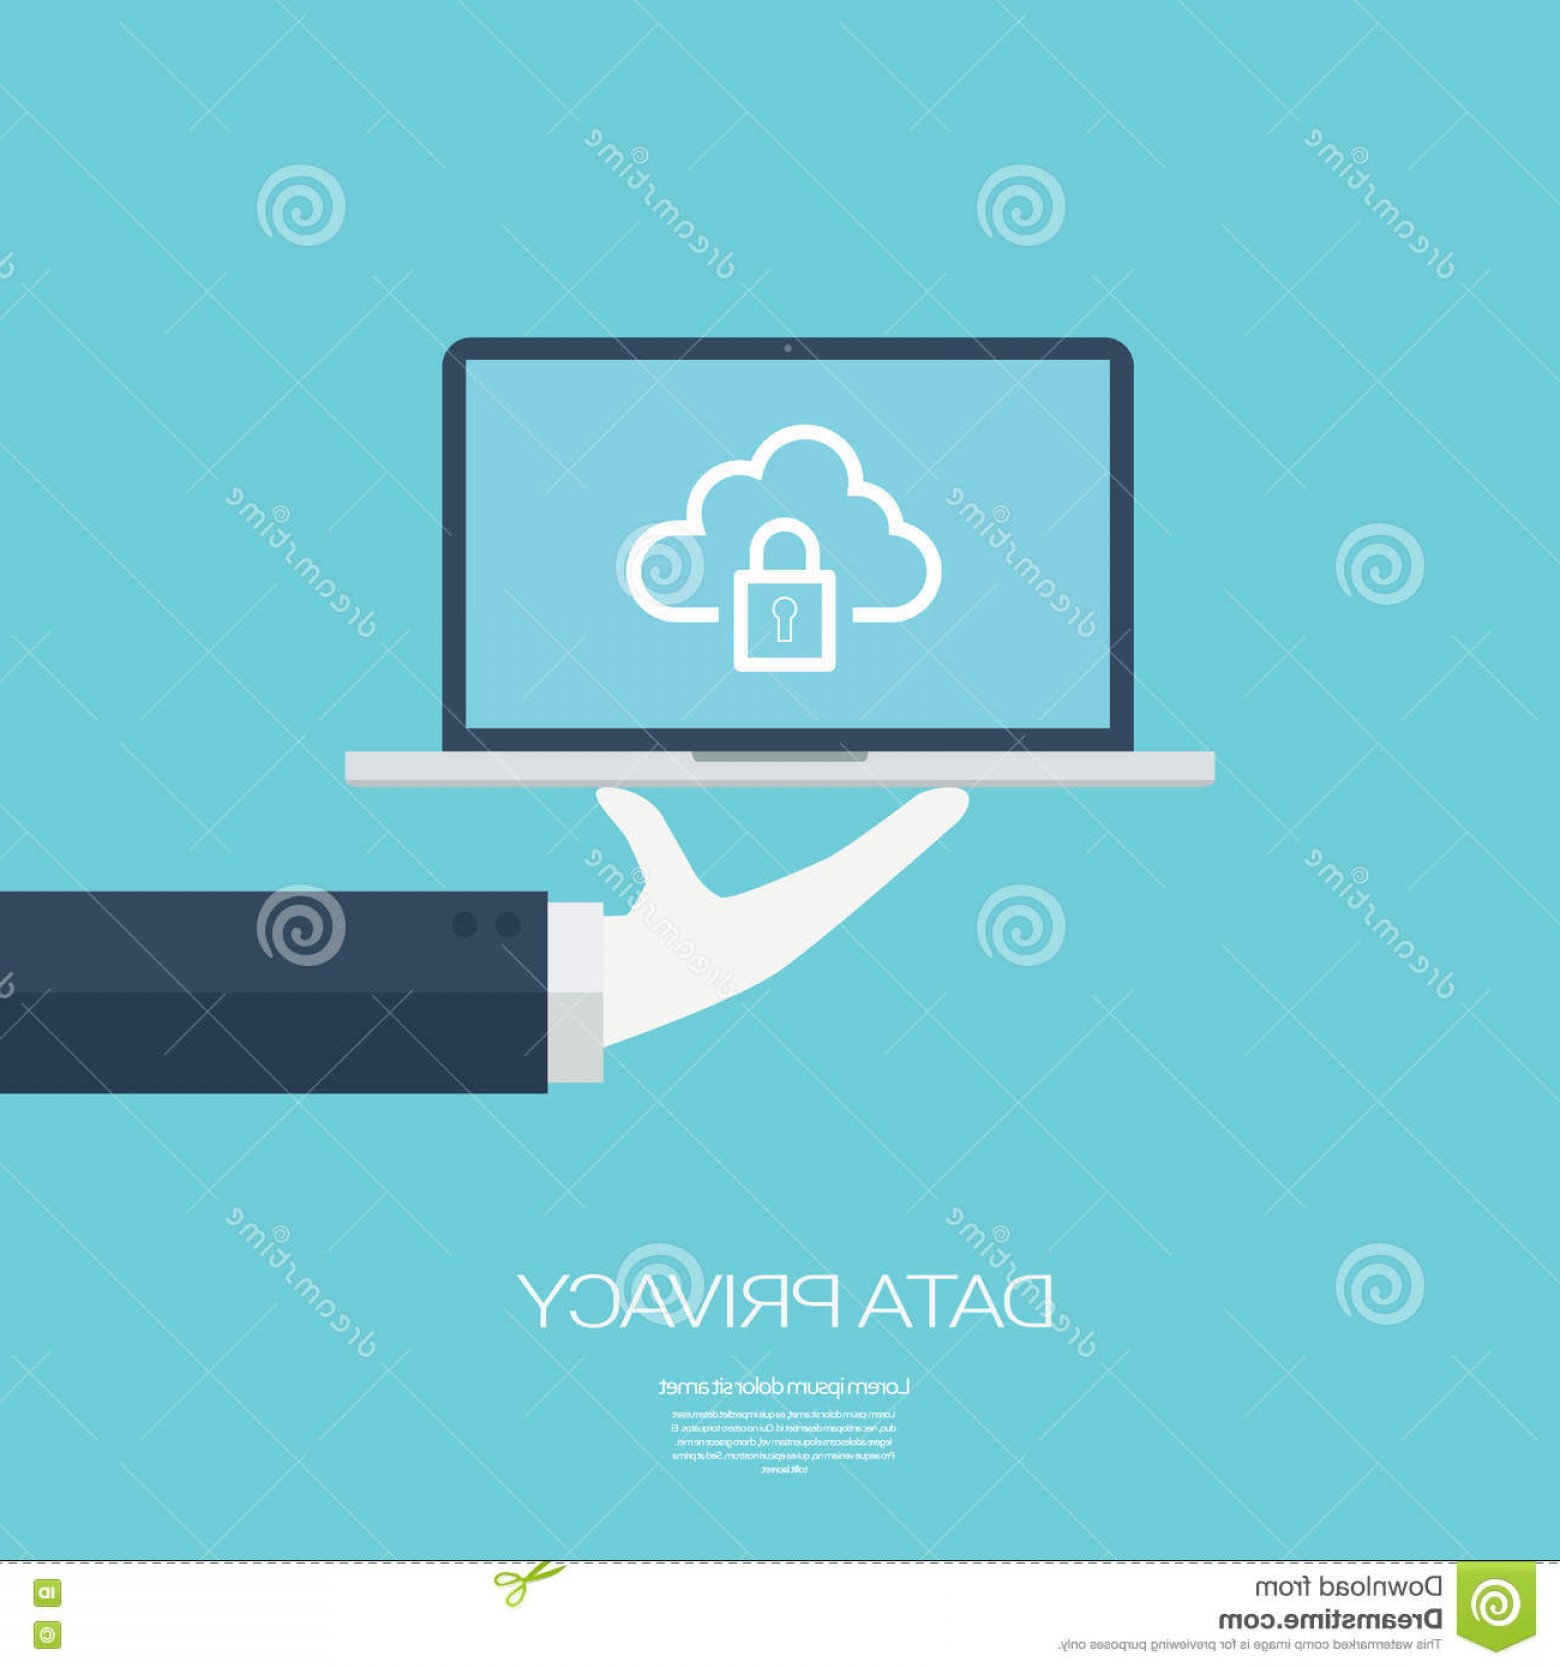 Vector Applications On Computers: Stock Illustration Data Privacy Cloud Computing Technology Digital Devices Icons Applications Computers Eps Vector Illustration Image